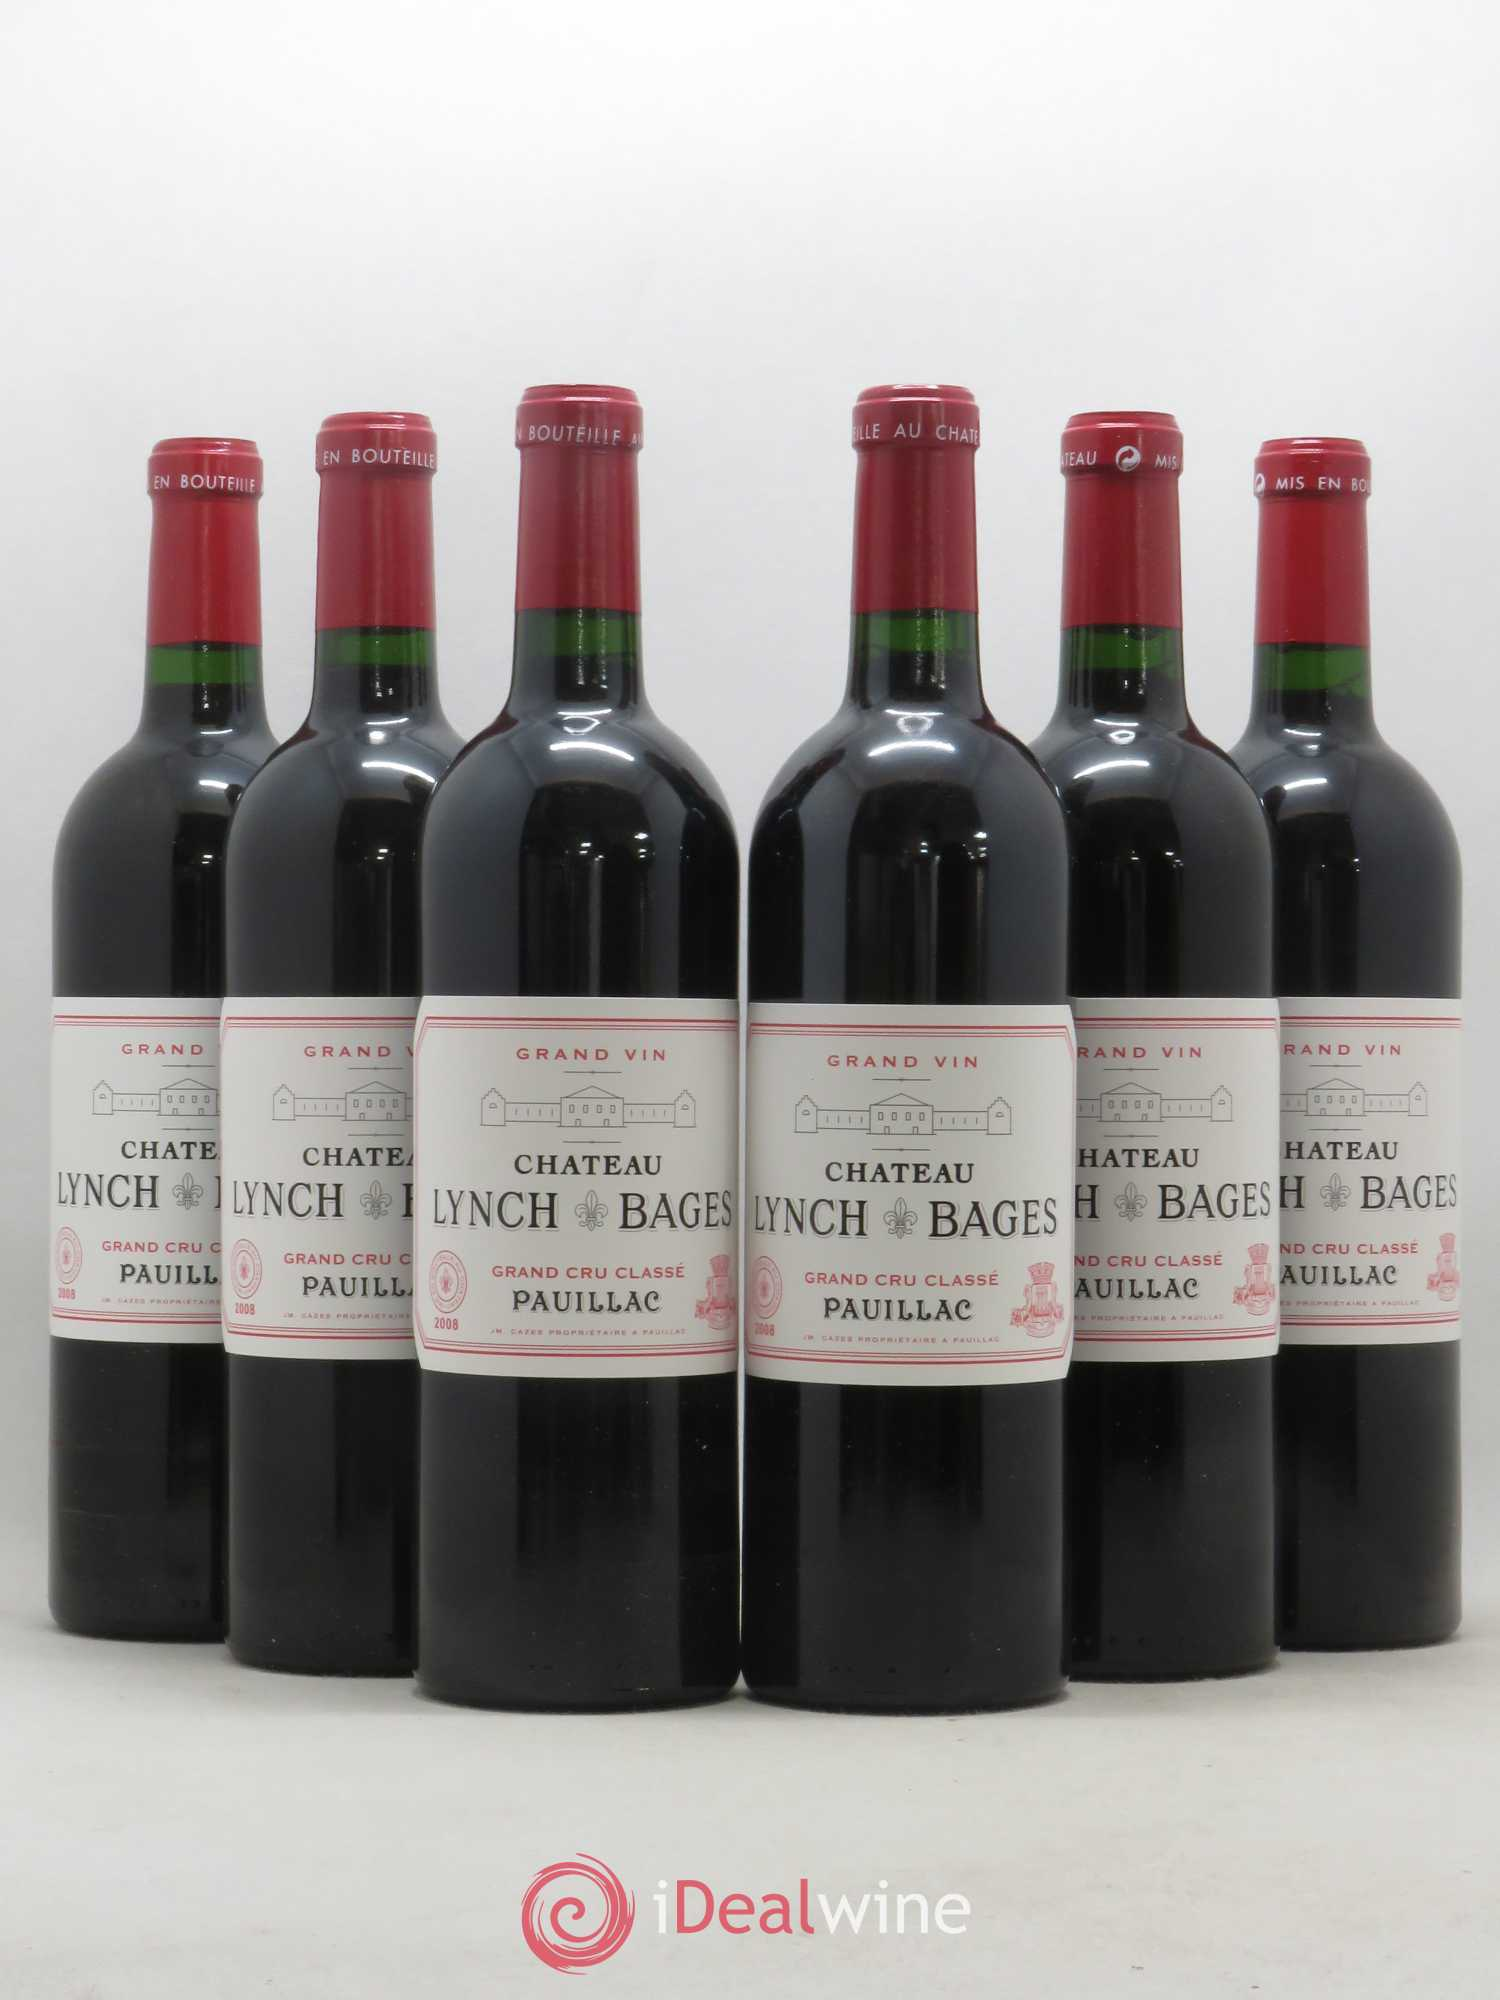 Château Lynch Bages 5ème Grand Cru Classé  2008 - Lot of 6 Bottles